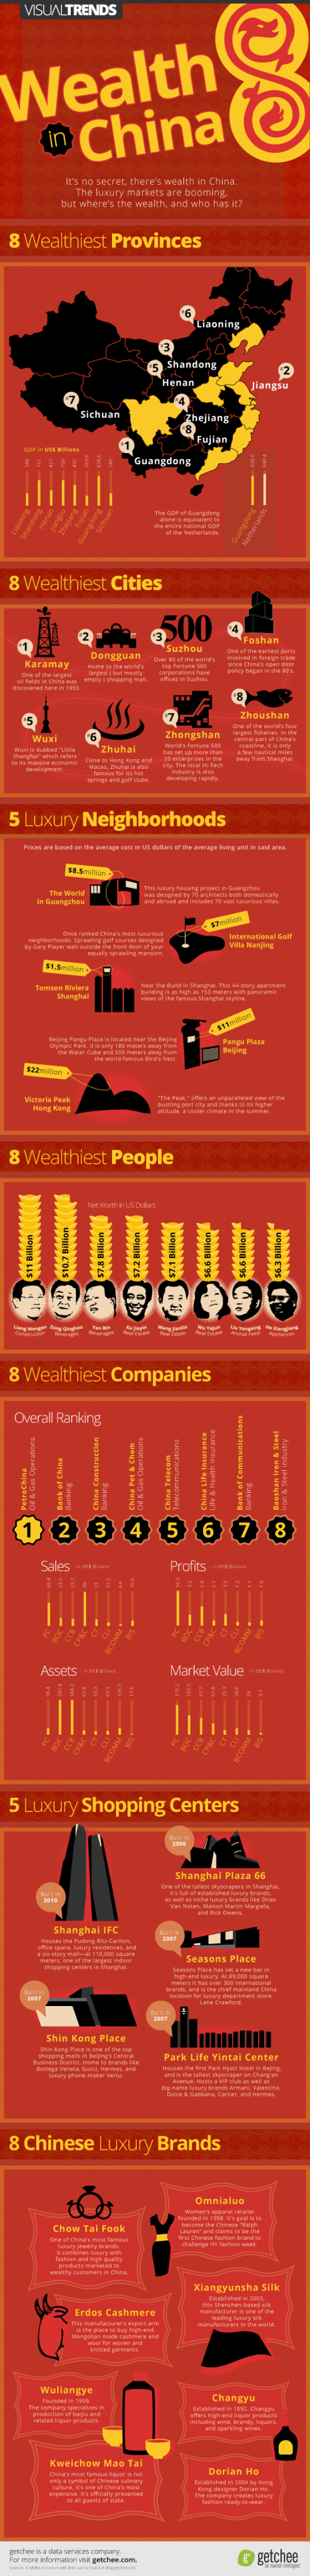 Wealth in China - Who has it, where it is, and what they